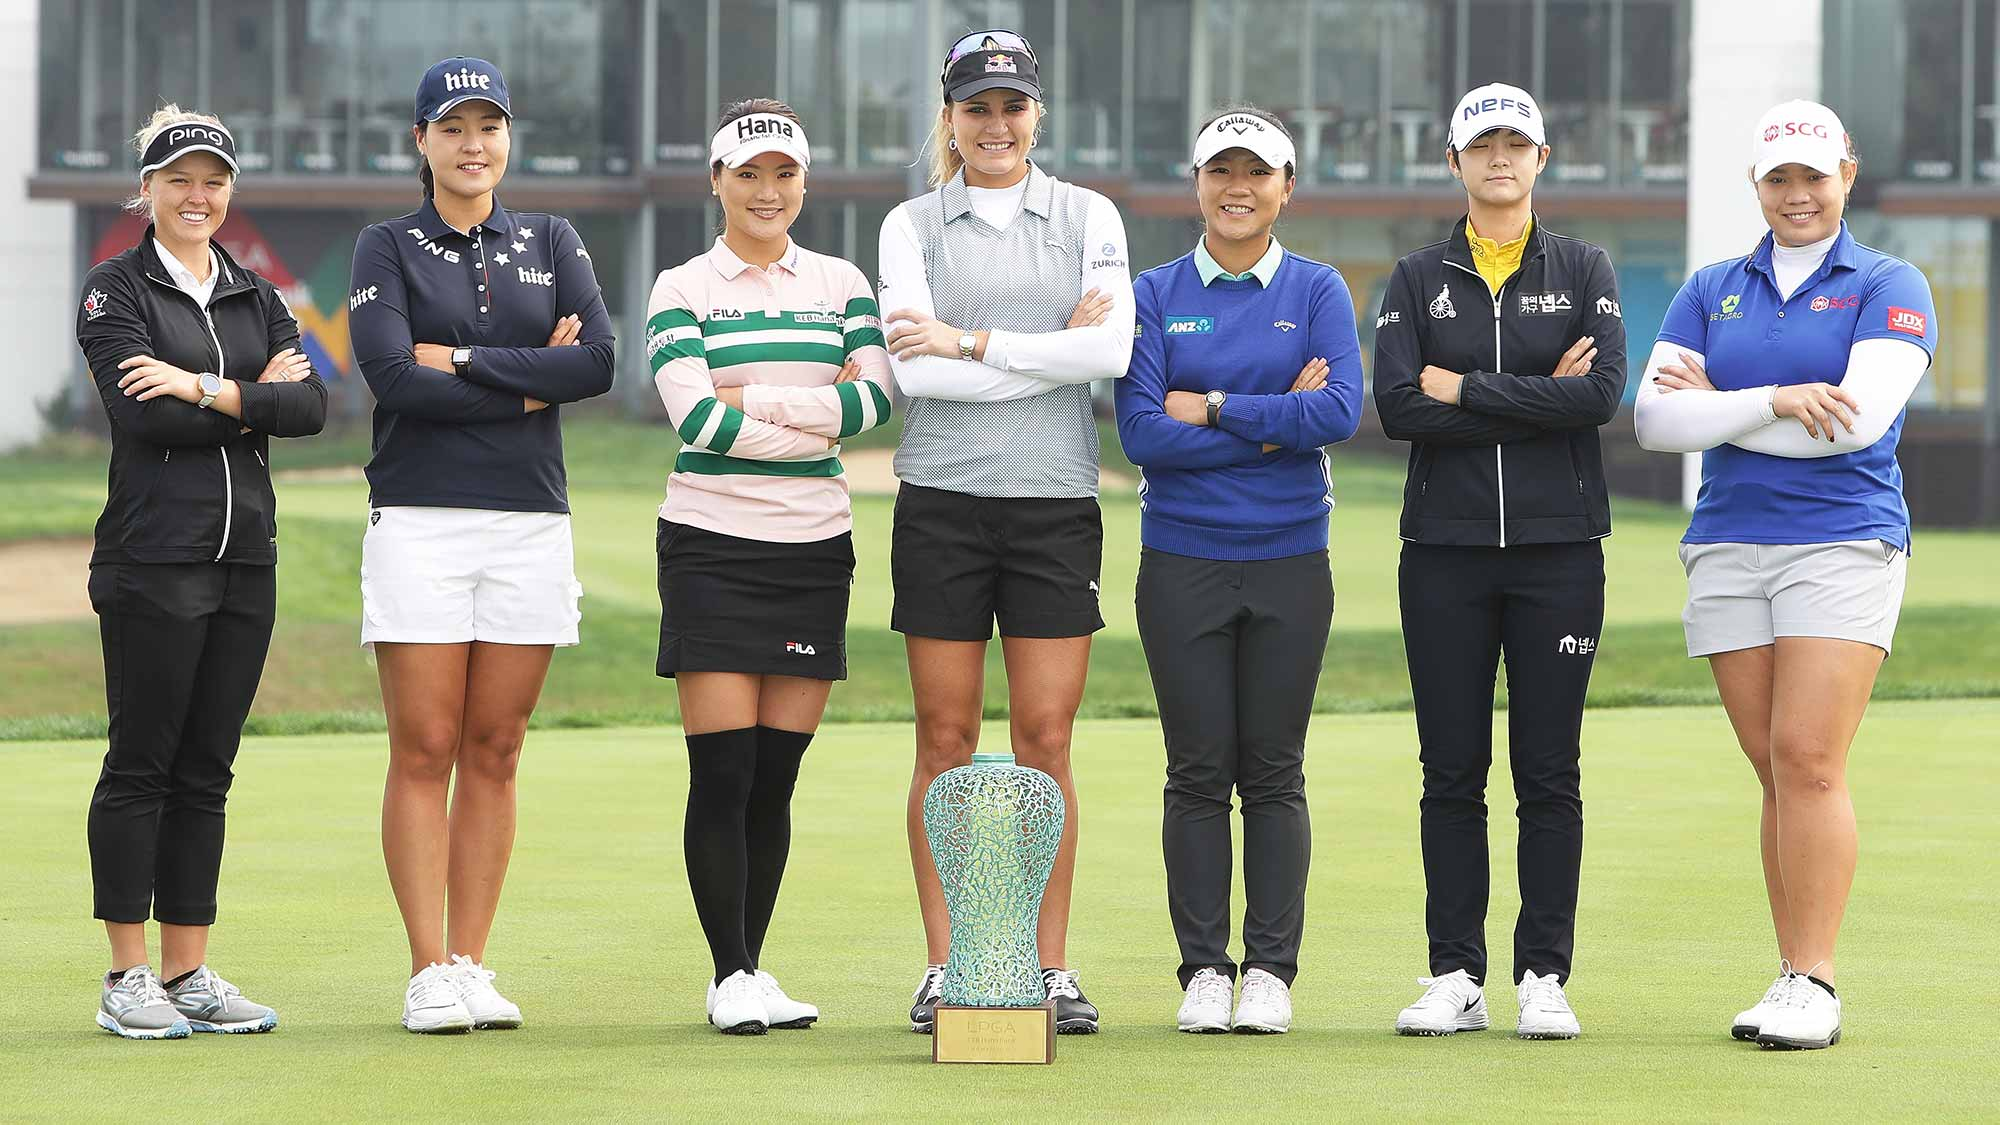 Brooke Henderson of Canada, In-Gee Chun of South Korea, So-Yeon Ryu of South Korea, Lexi Thompson of United States, Lydia Ko of New Zealand, Sung-Hyun Park of South Korea and Ariya Jutanugarn of Thailand pose during a photo call ahead of the LPGA KEB-Hana Bank Championship